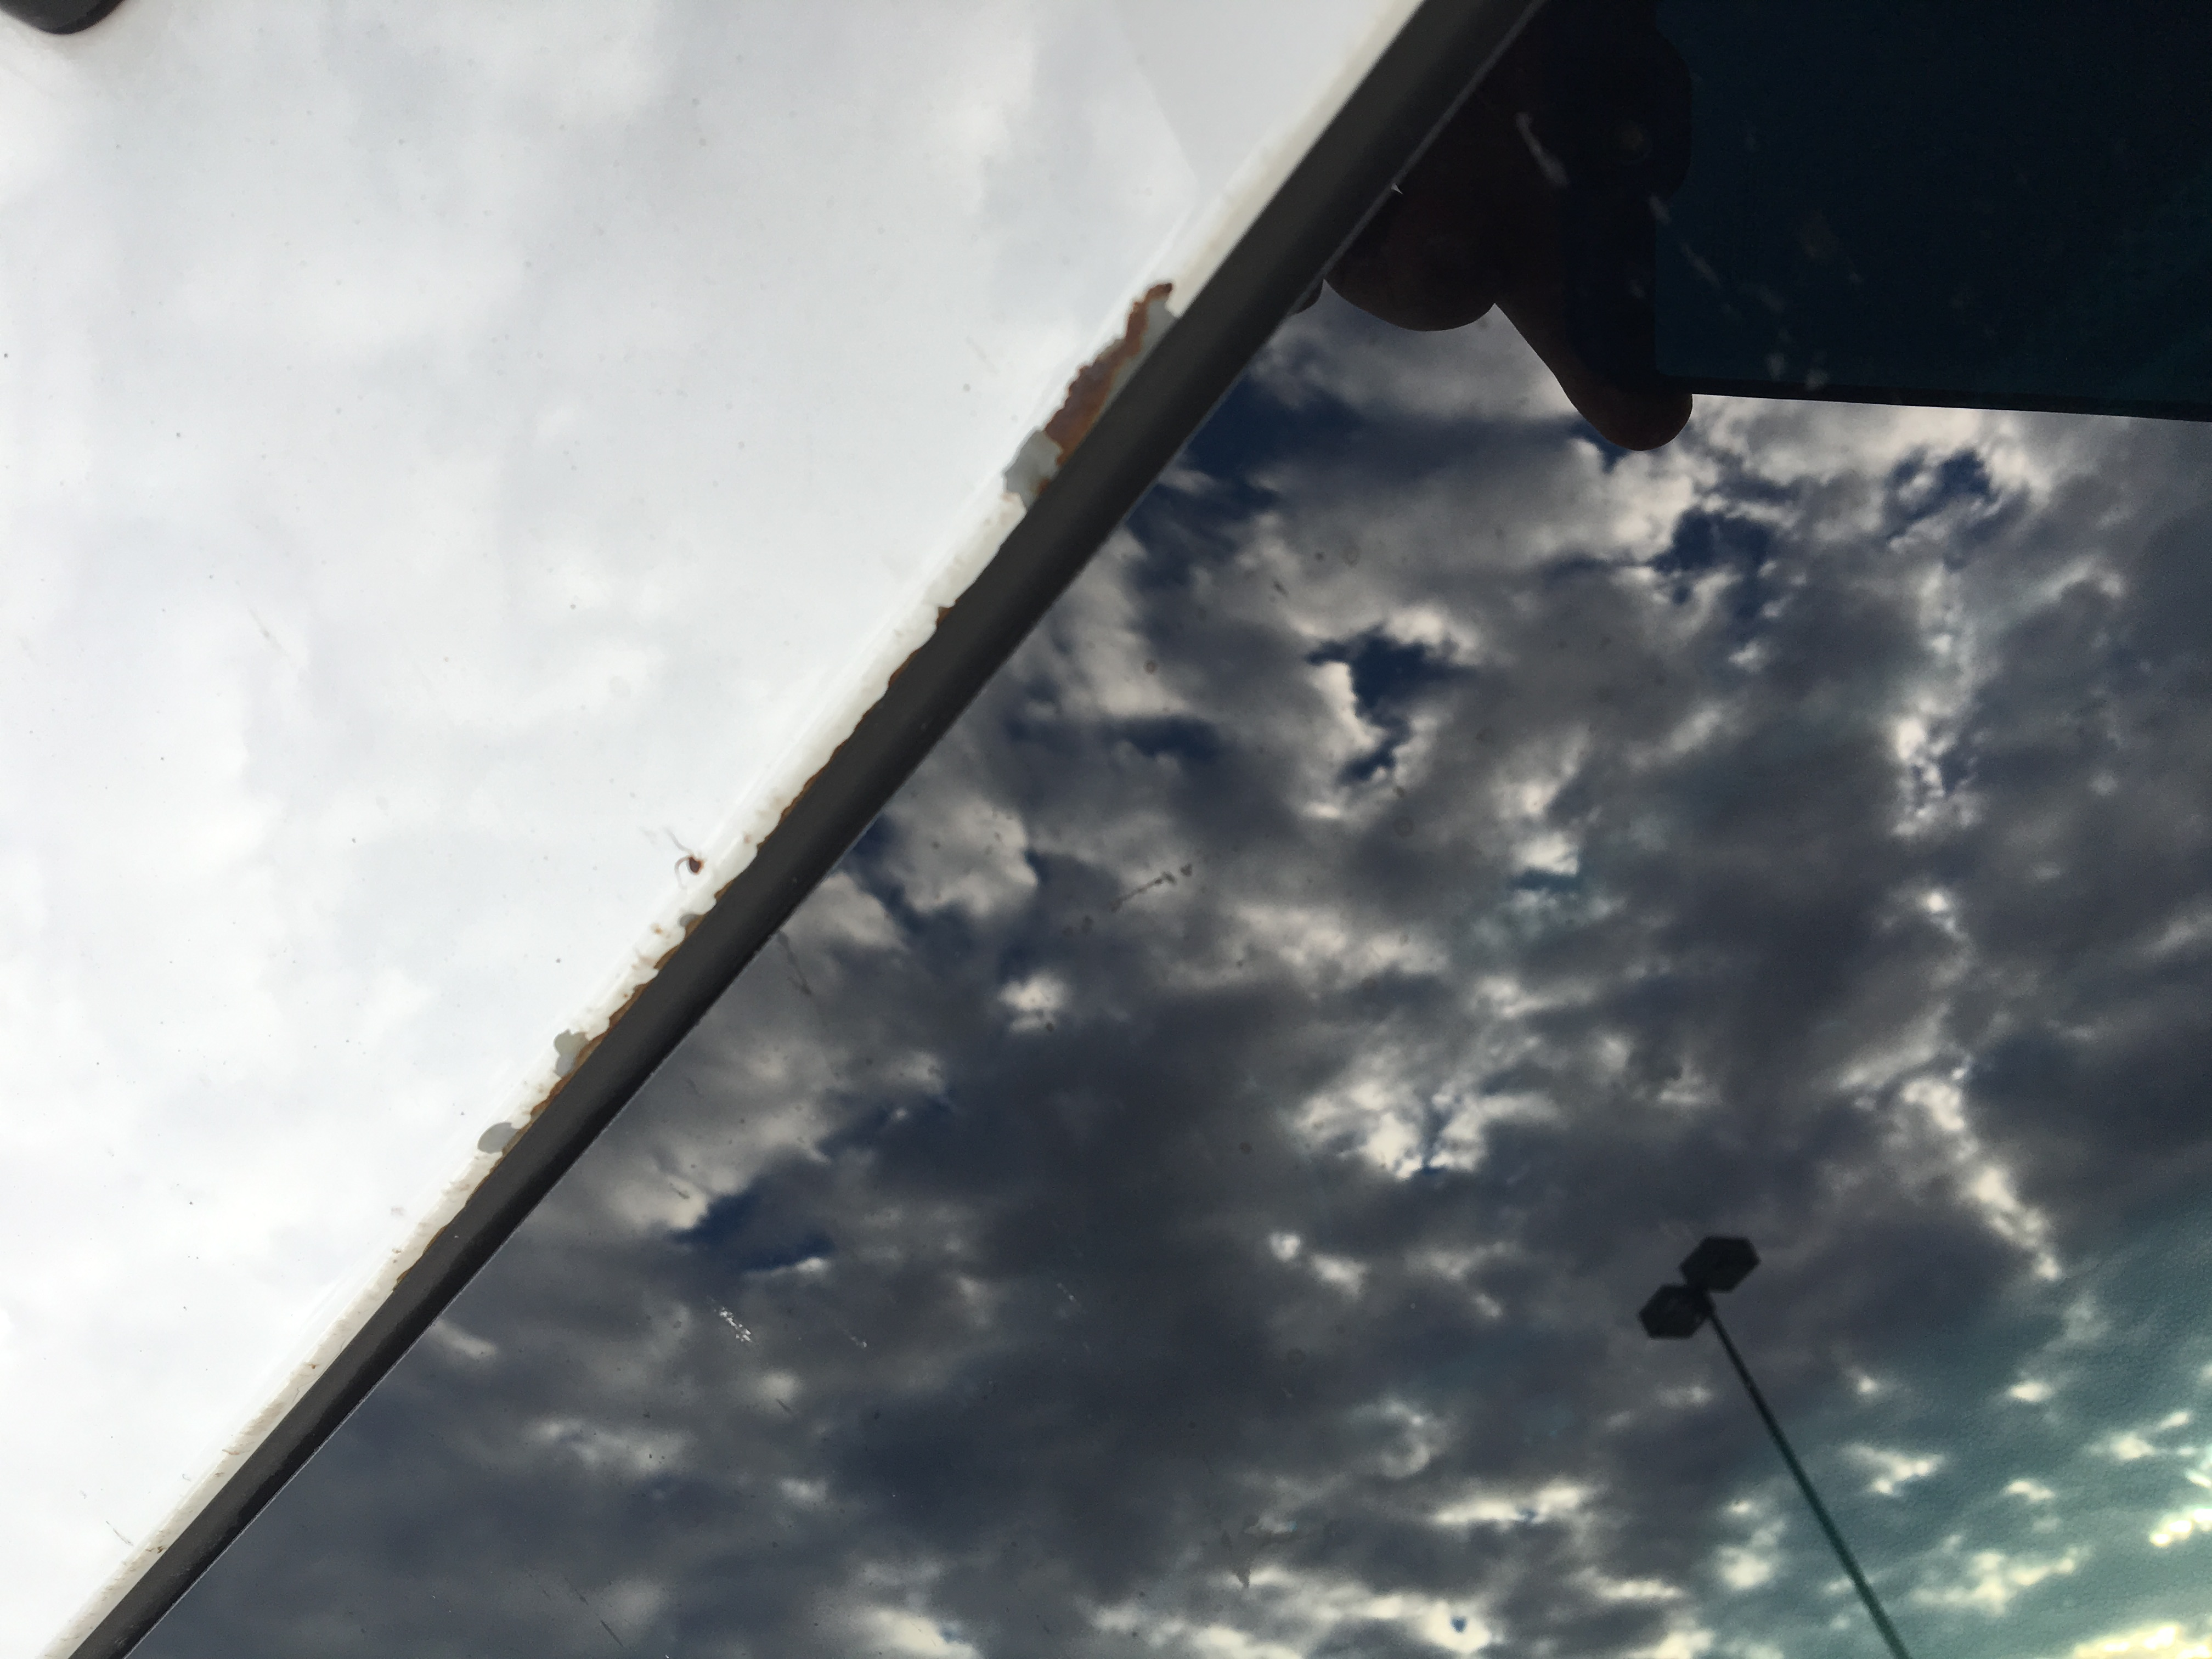 Fixing chipped paint above windshield